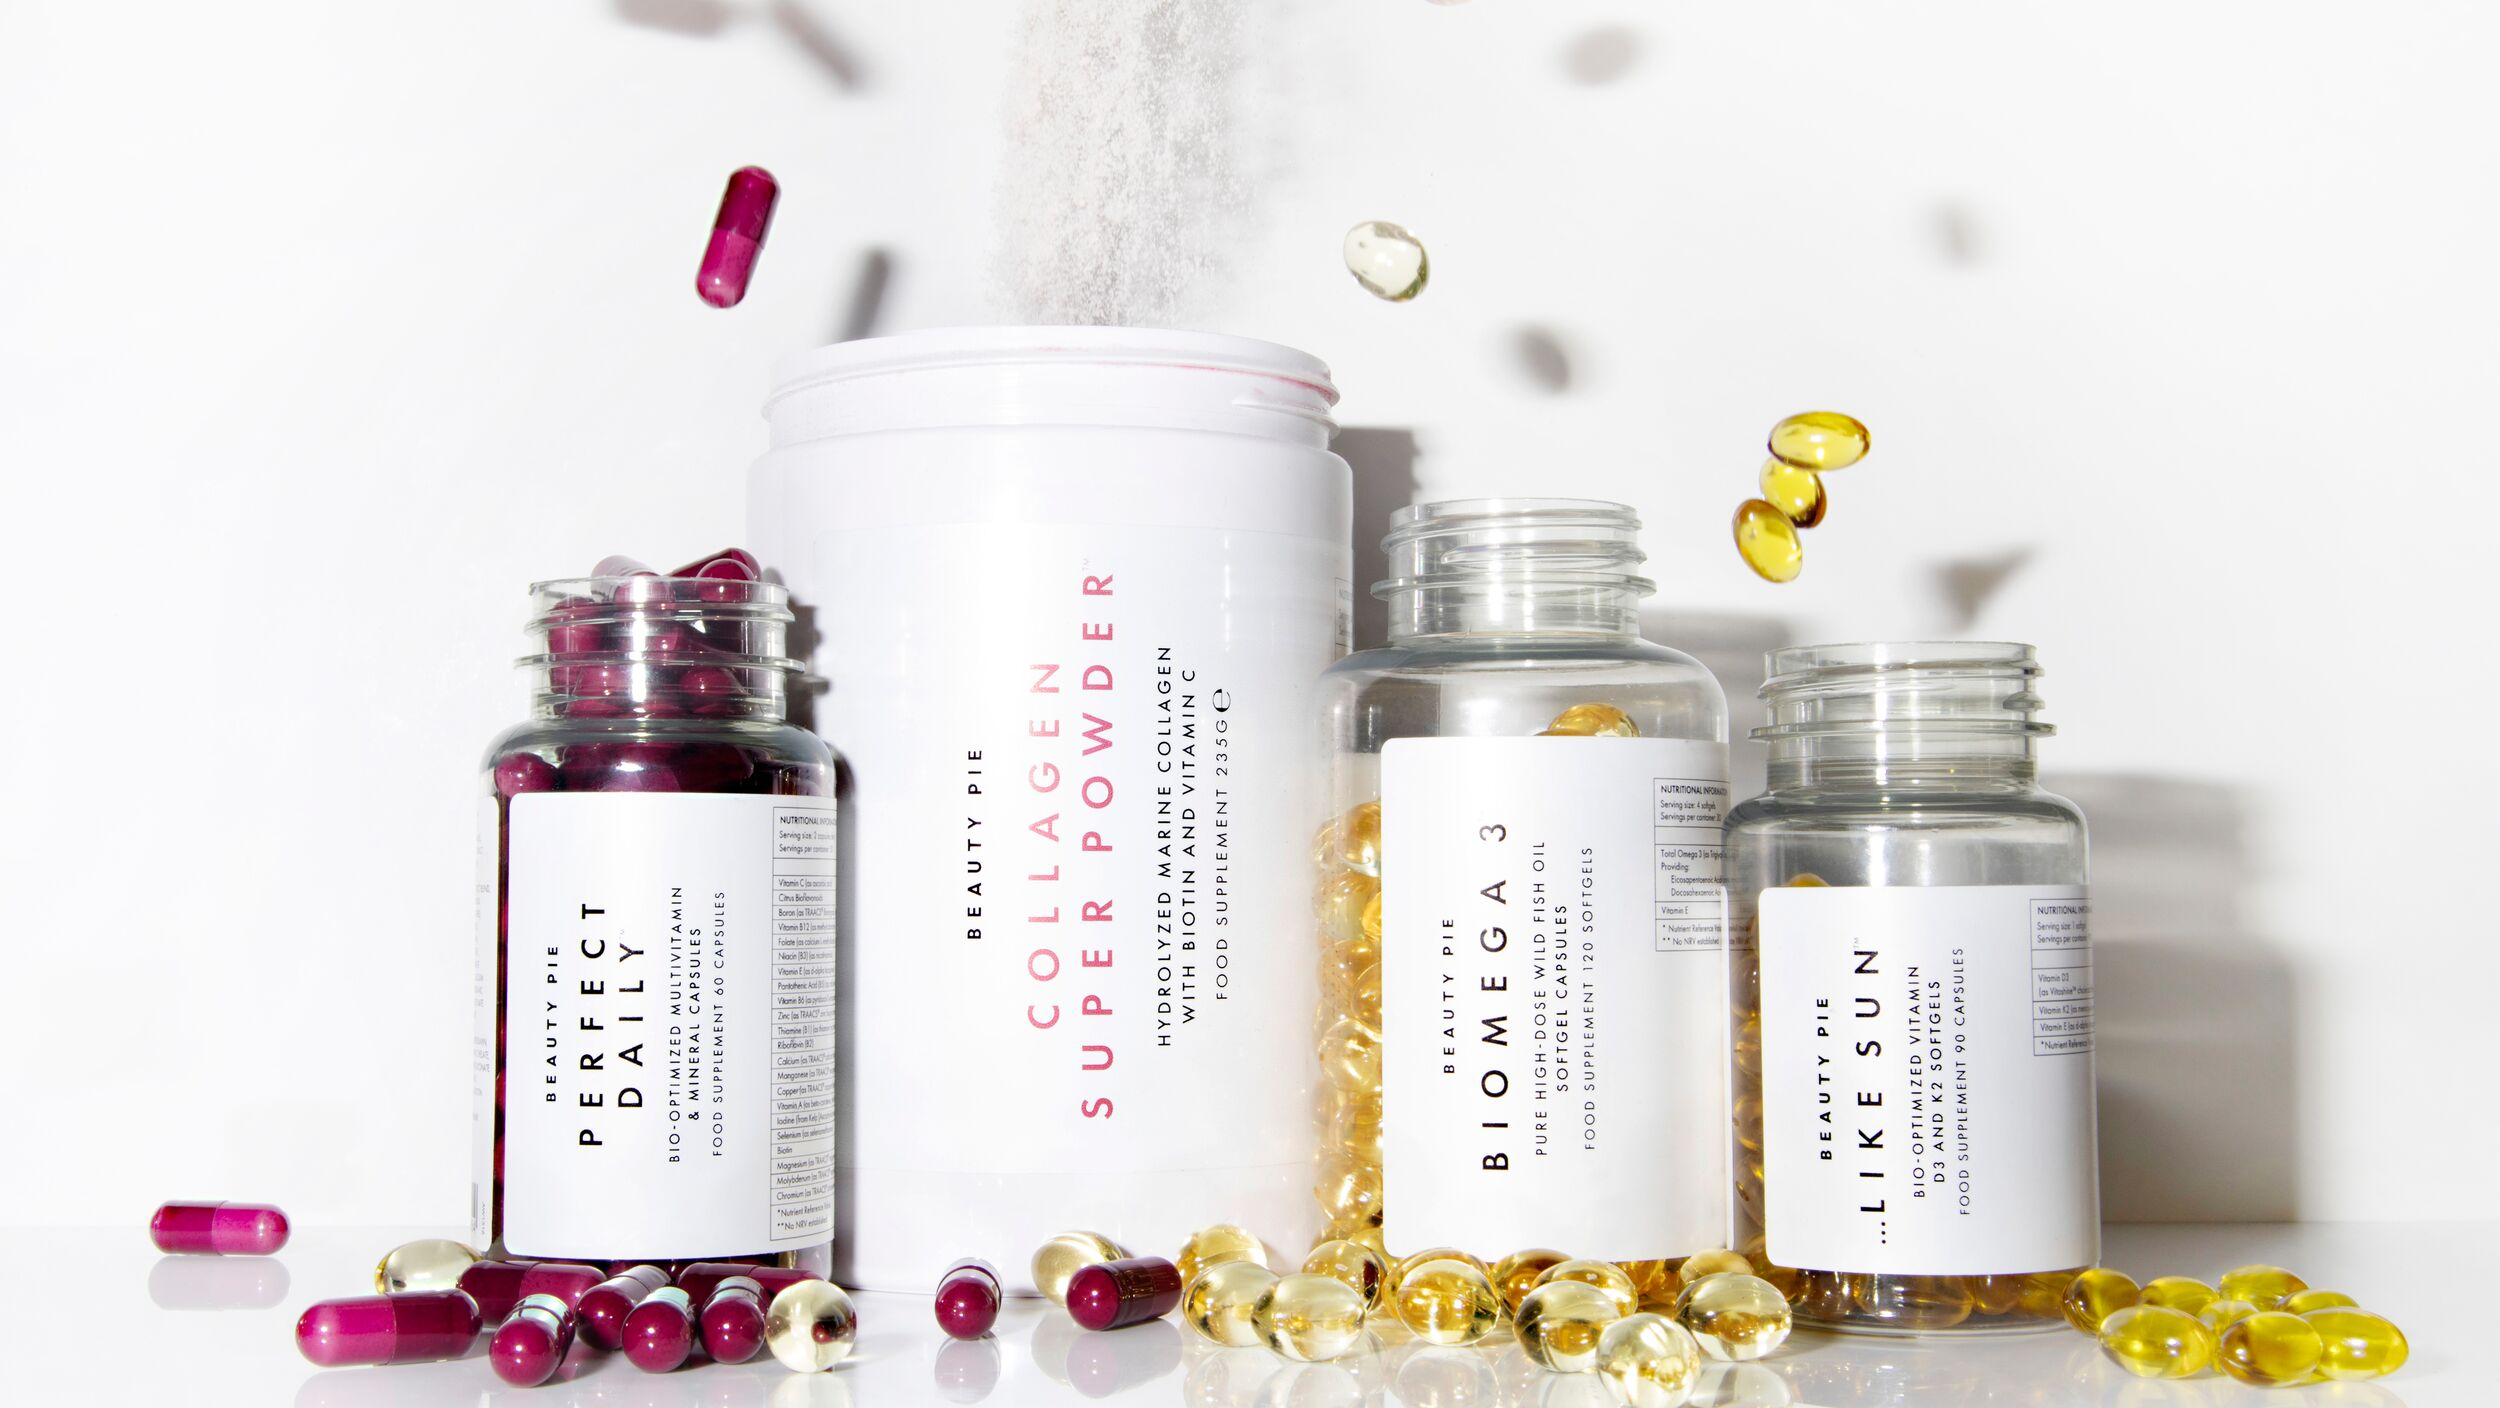 BEAUTY PIE New Supplements and Vitamins